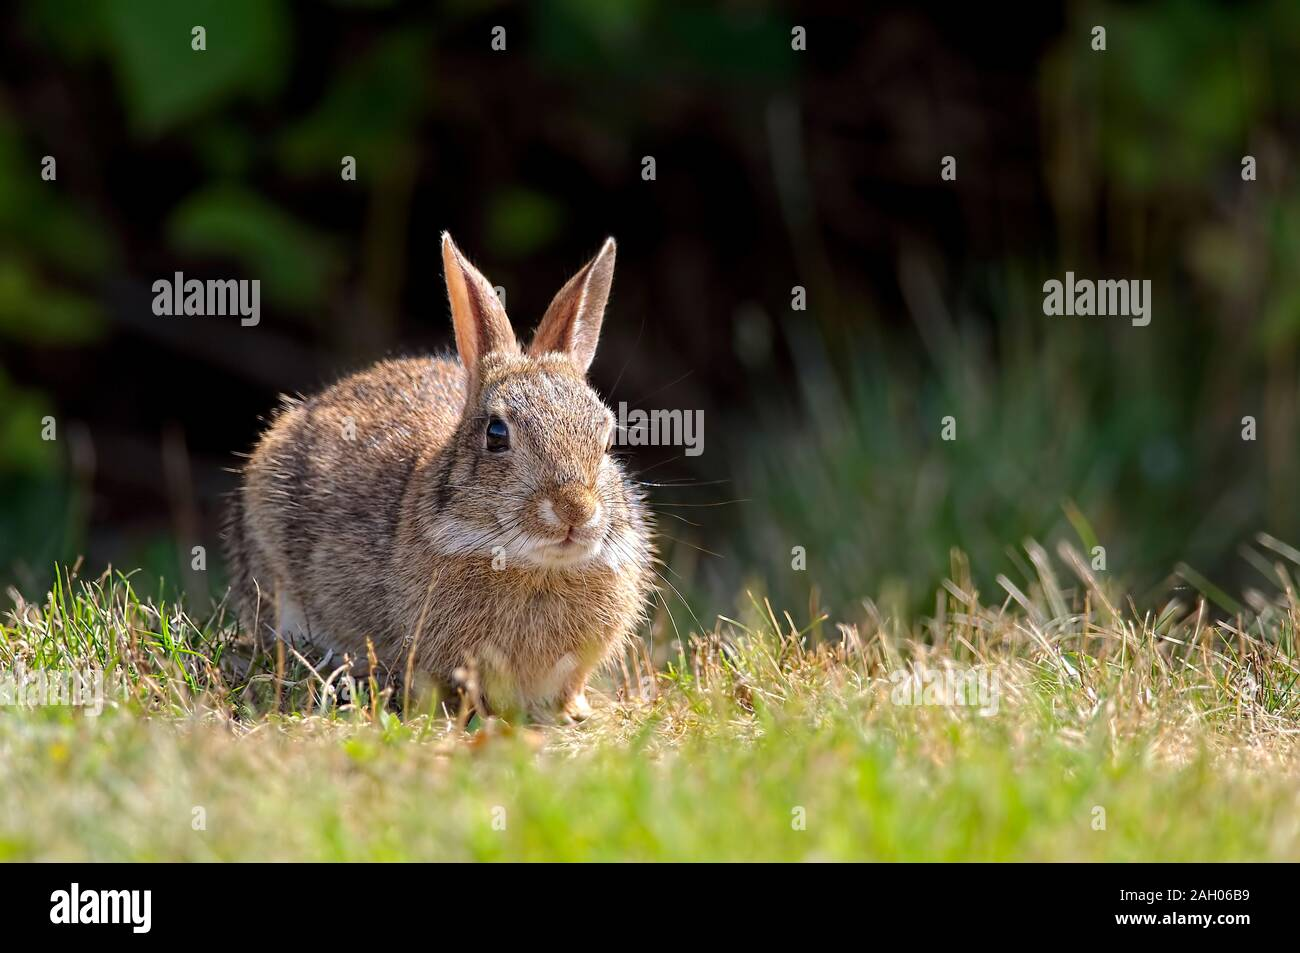 A Brush rabbit (Sylvilagus bachmani) or western brush rabbit is a type of Cottontail rabbit found in western coastal regions of North America. Stock Photo